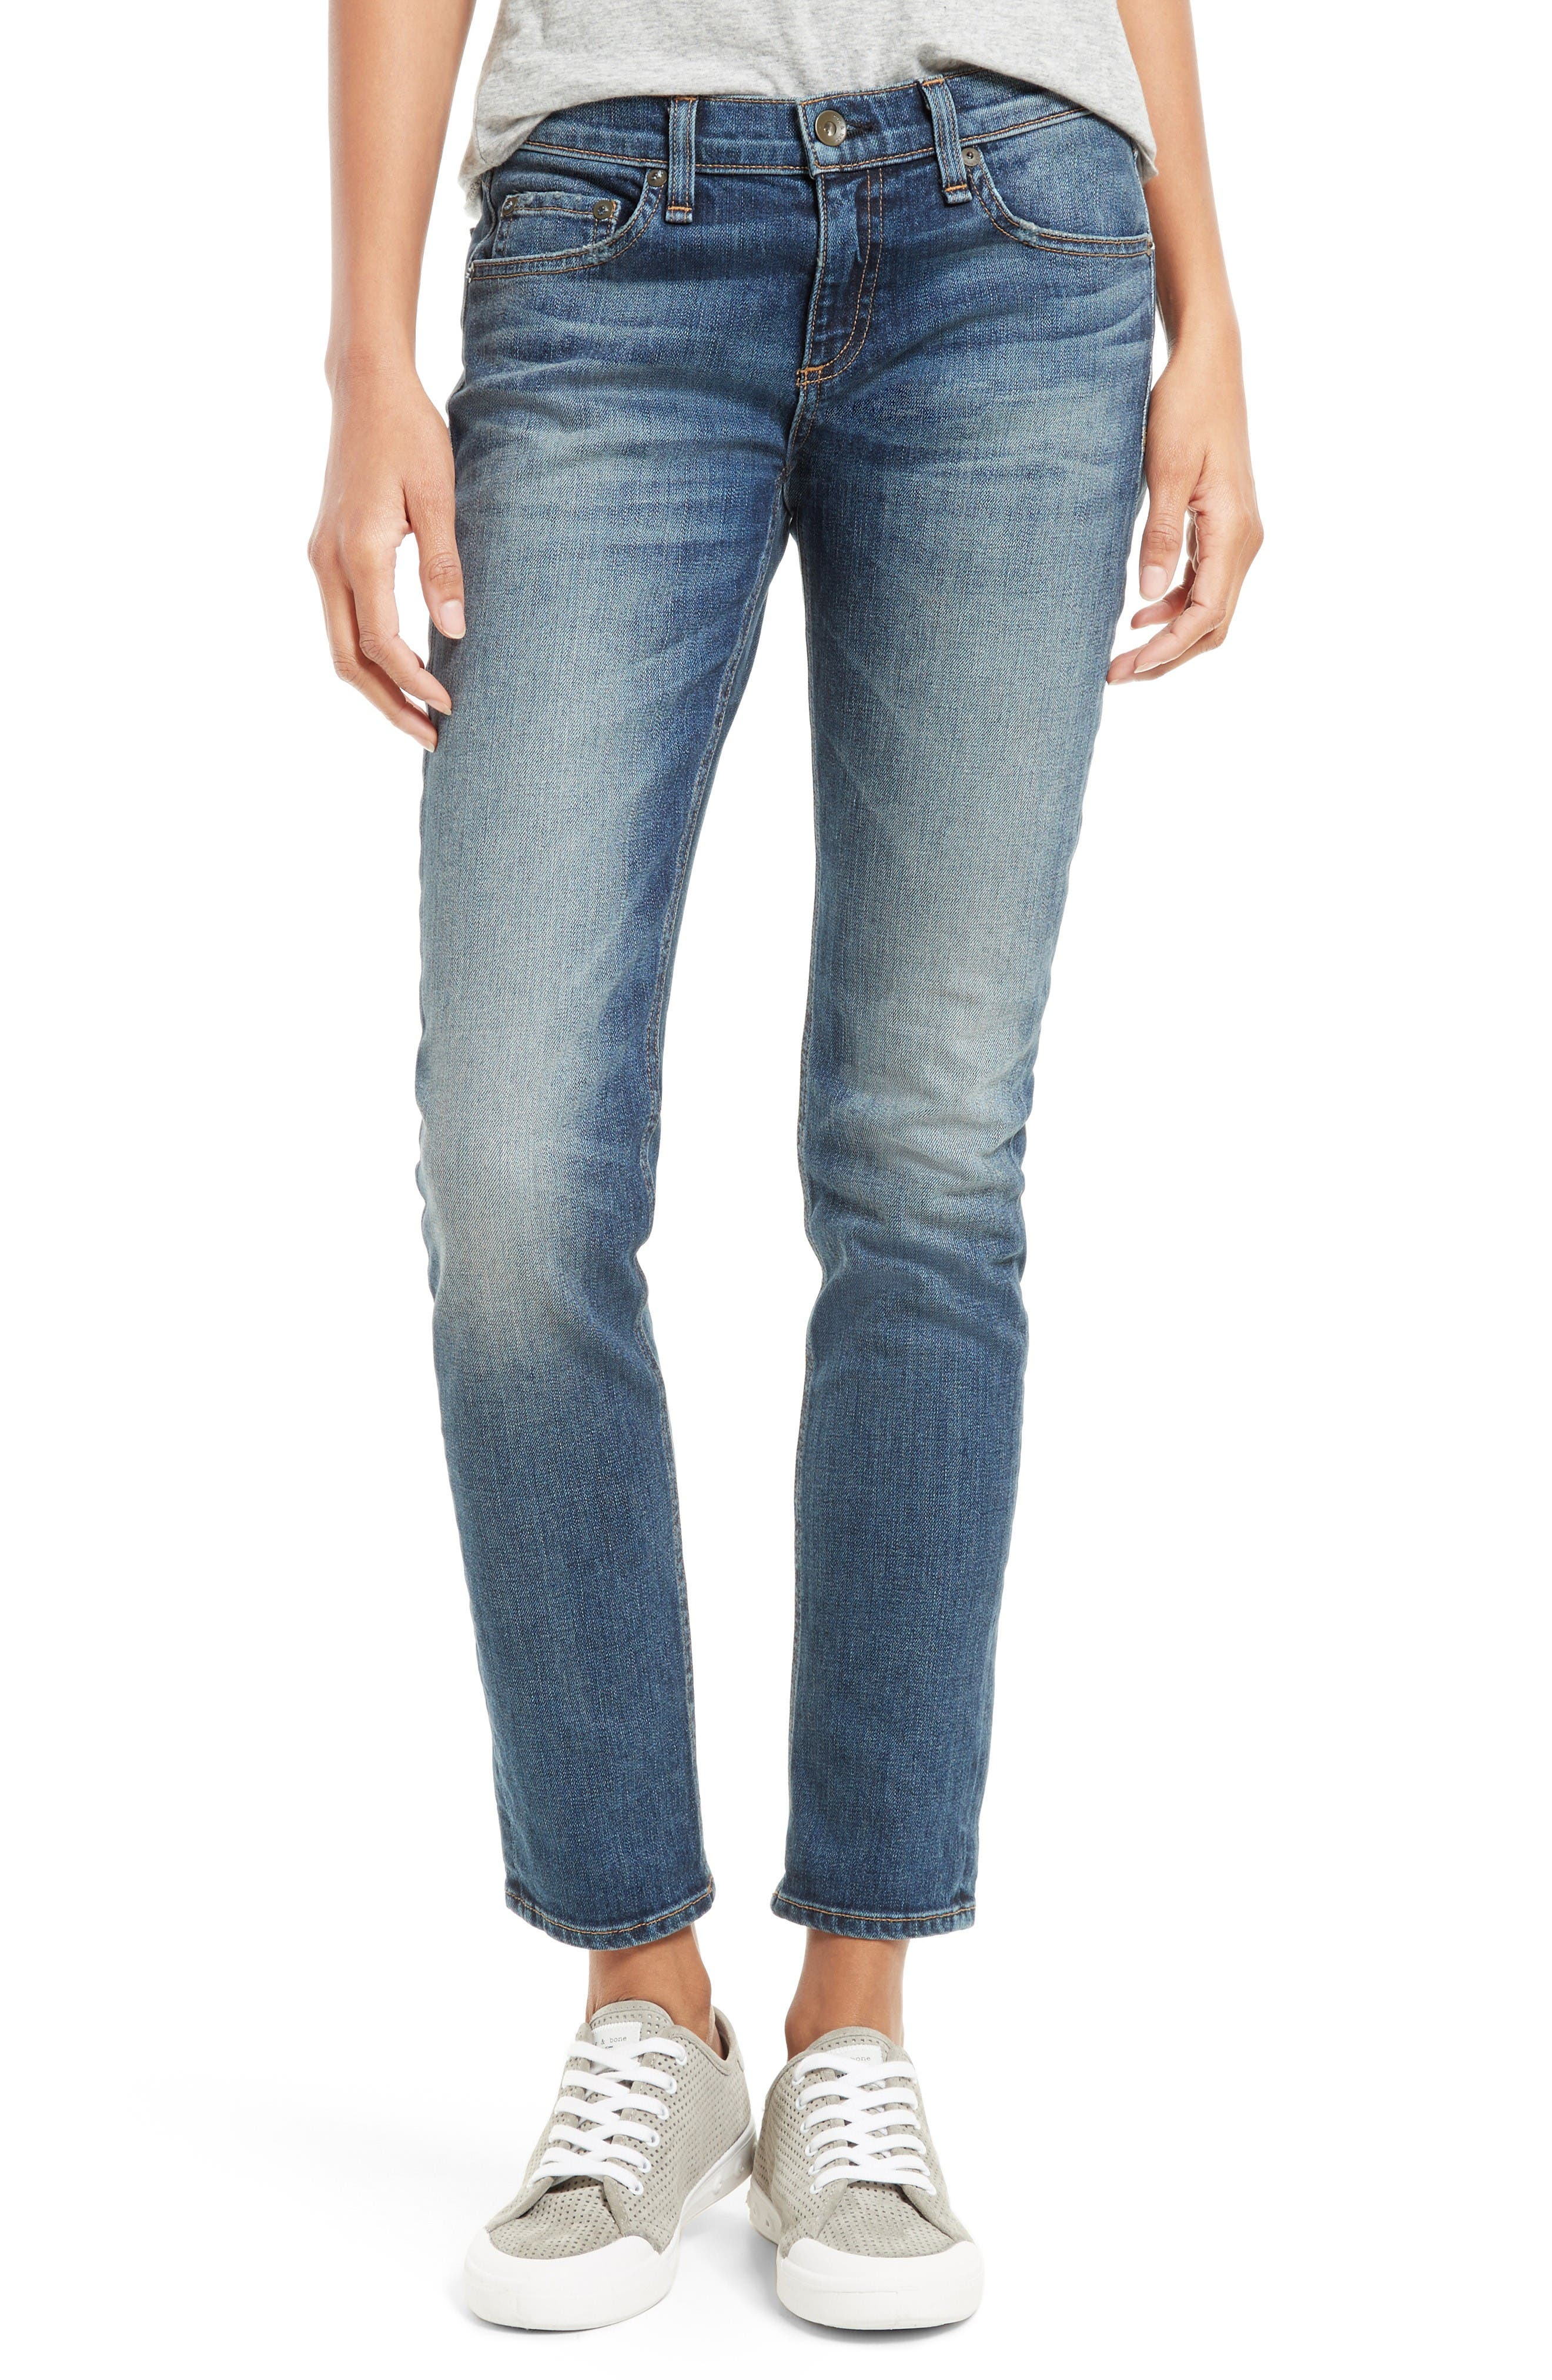 Alternate Image 1 Selected - rag & bone/JEAN The Dre Slim Boyfriend Jeans (Bard)